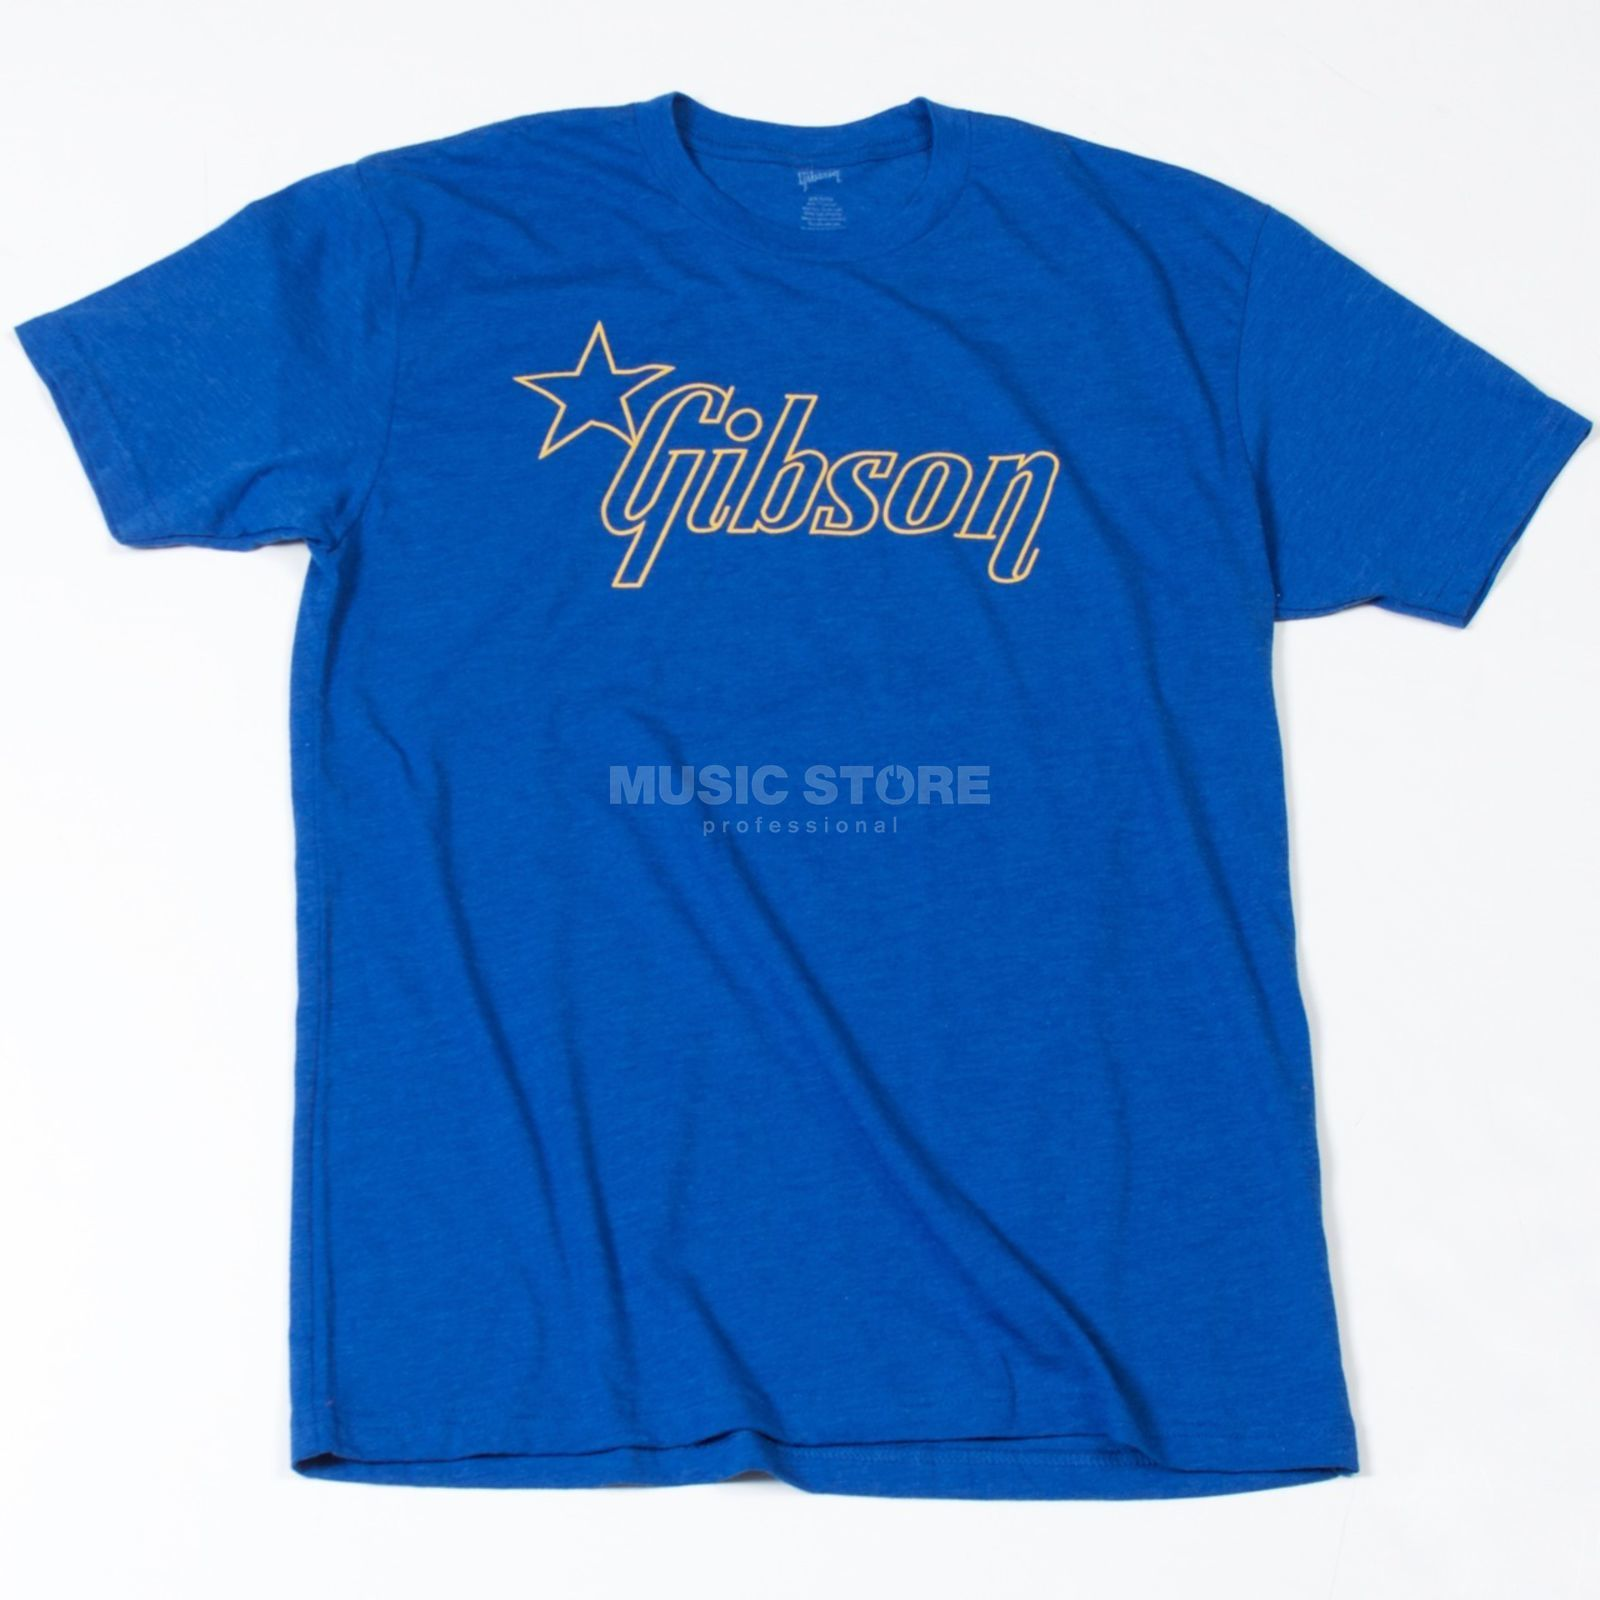 Gibson Star T-Shirt M Imagen del producto